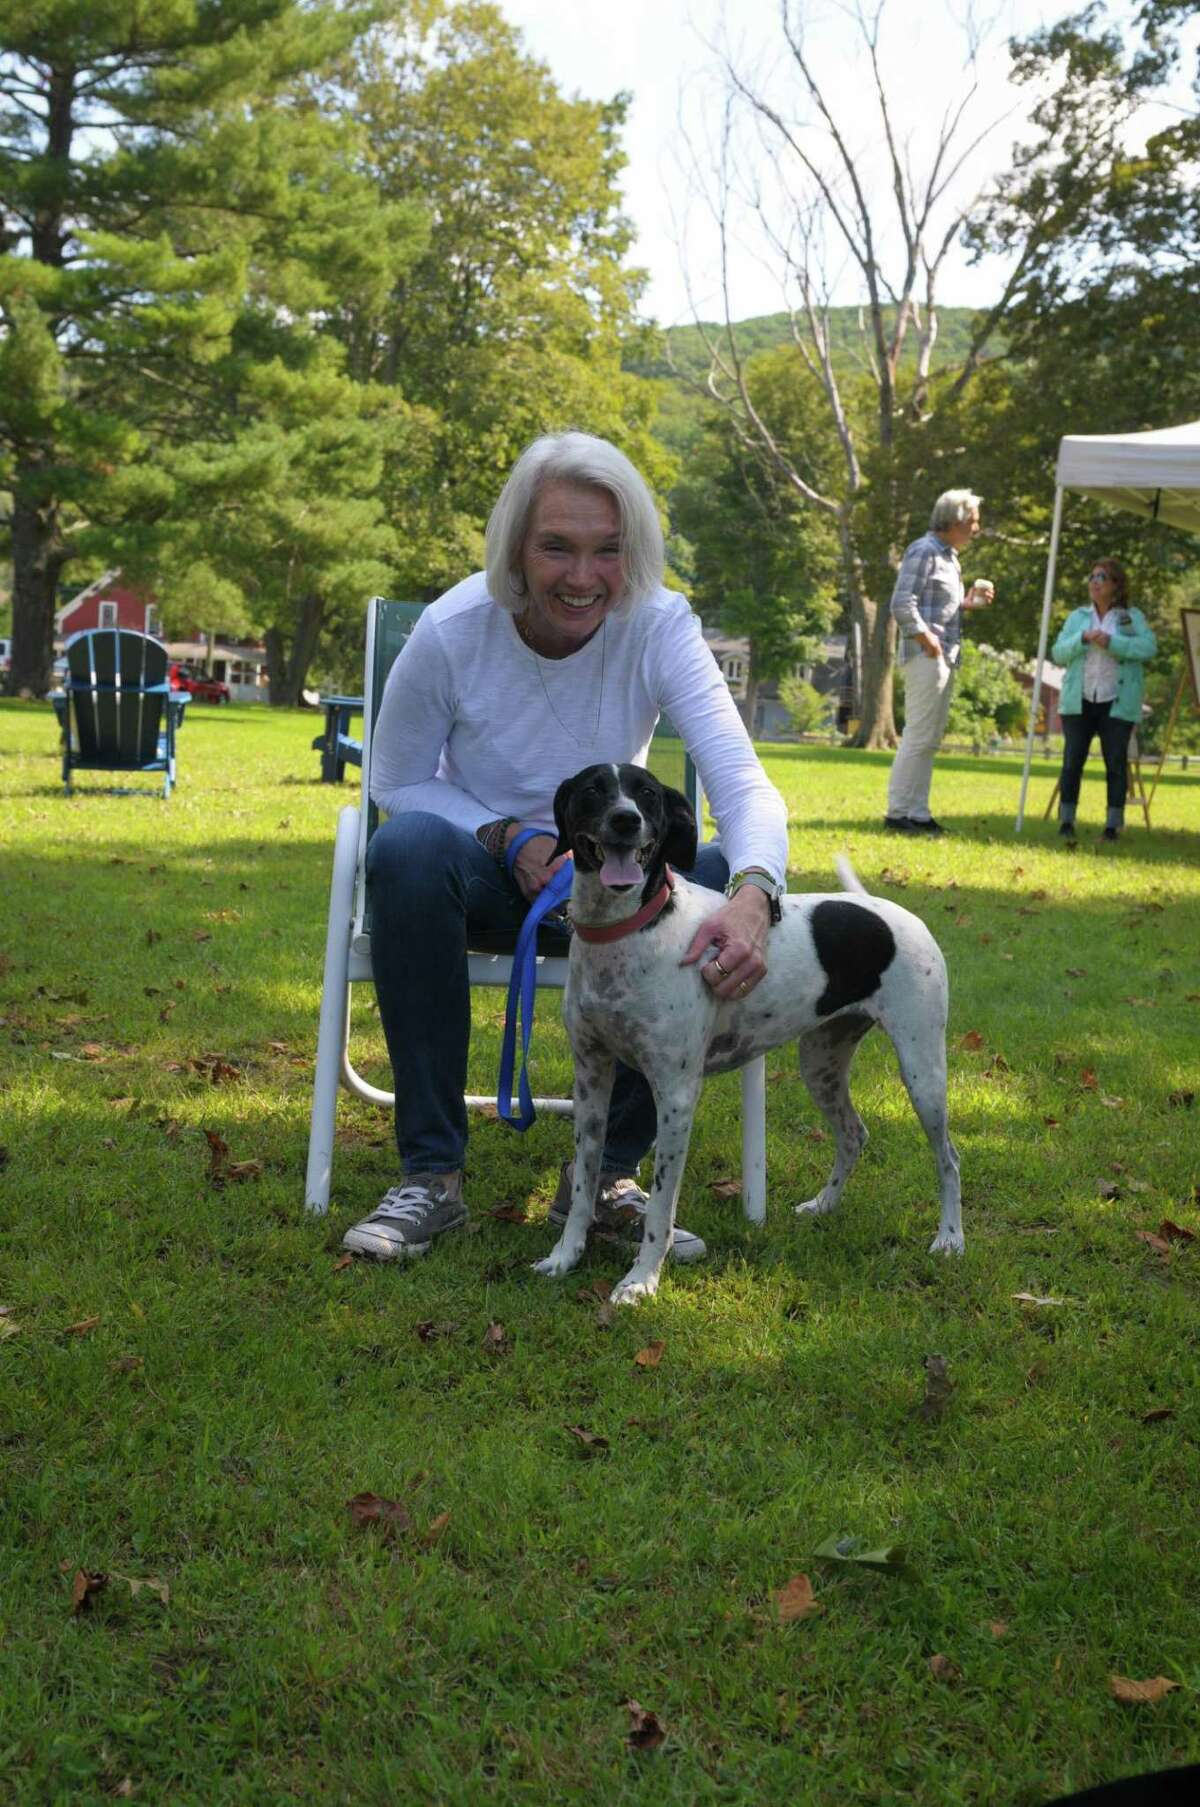 State Rep. of the 64th district Maria Horn and her dog Nelly in Kent.